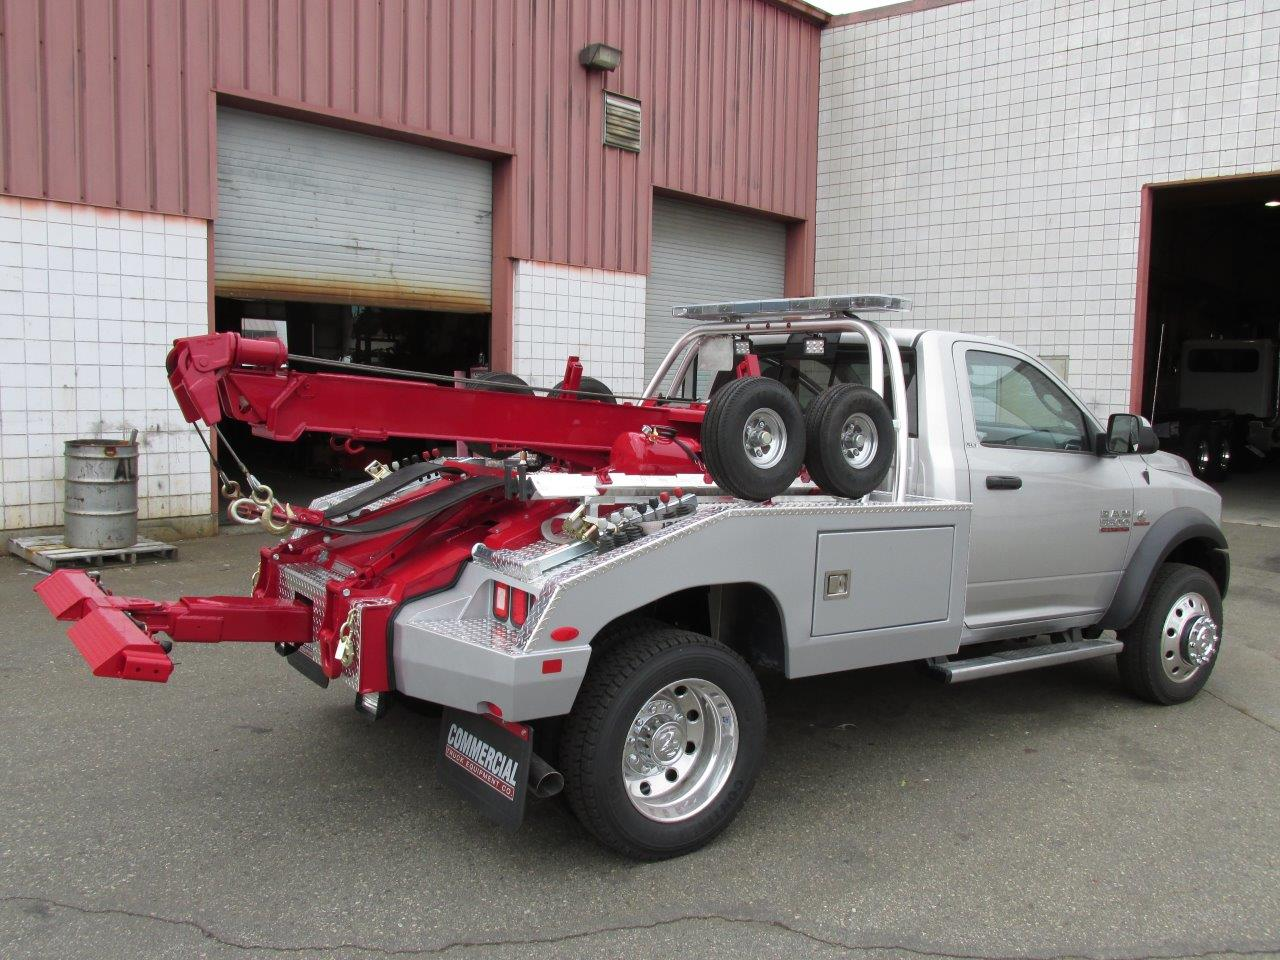 Towing Equipment Flat Bed Car Carriers Tow Truck Sales